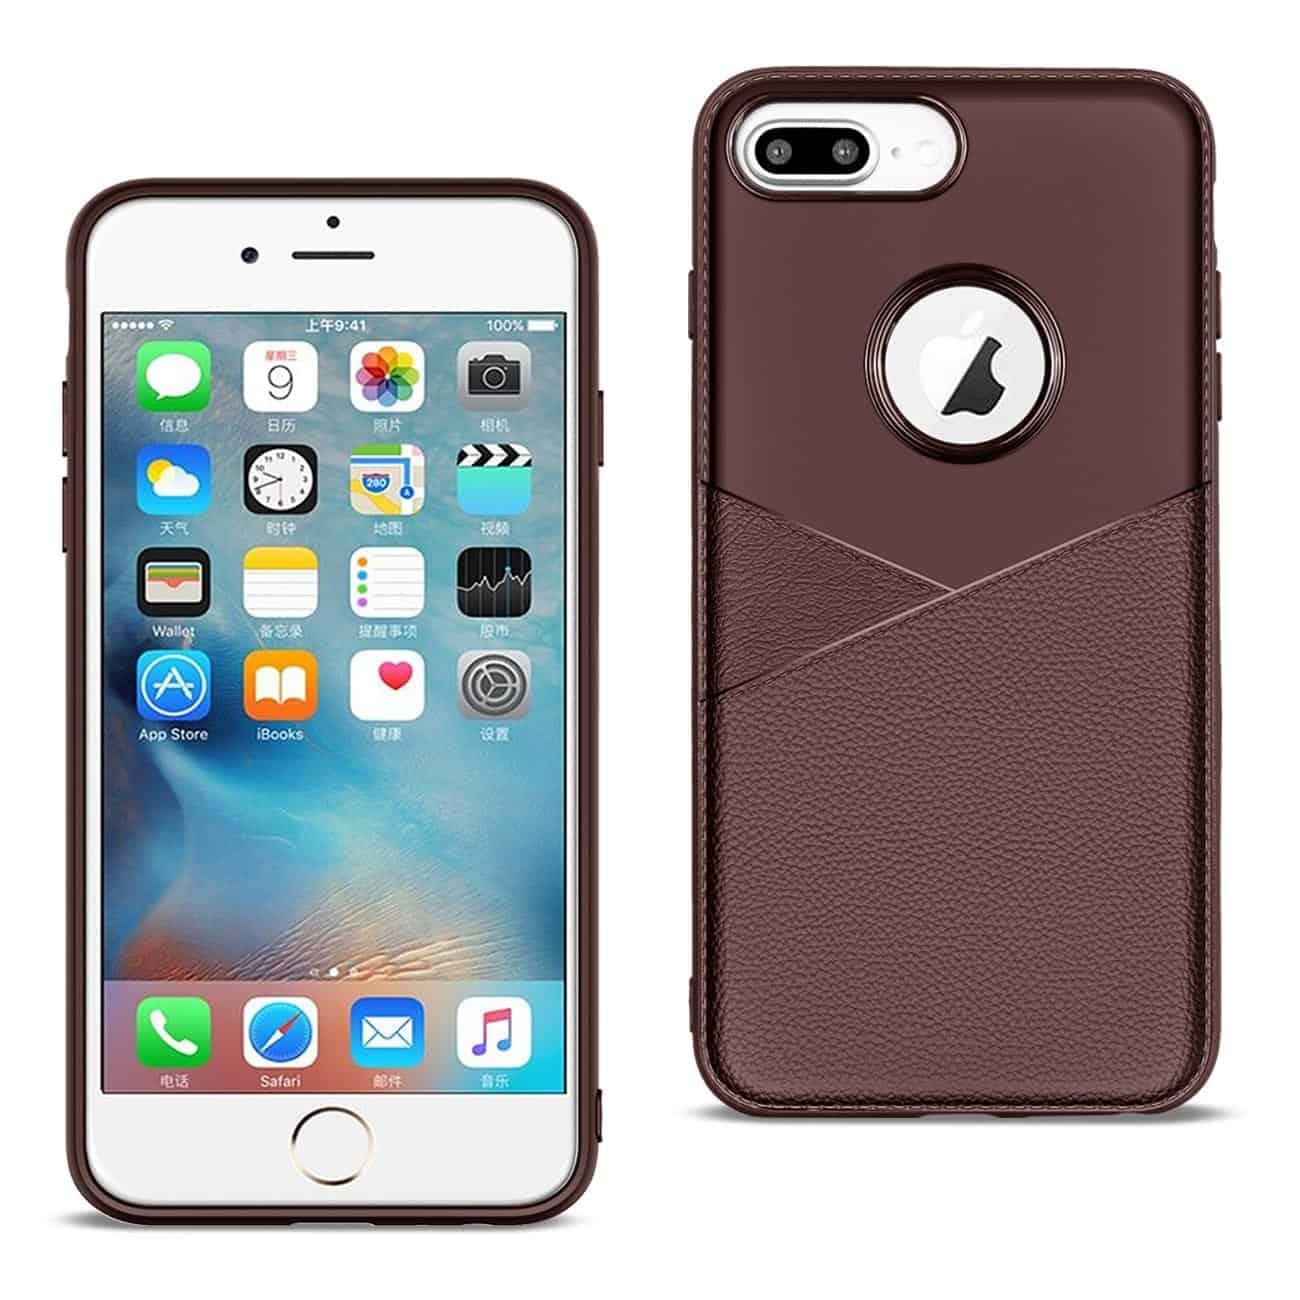 Apple iPhone 8 Plus Good quality phone case in Brown